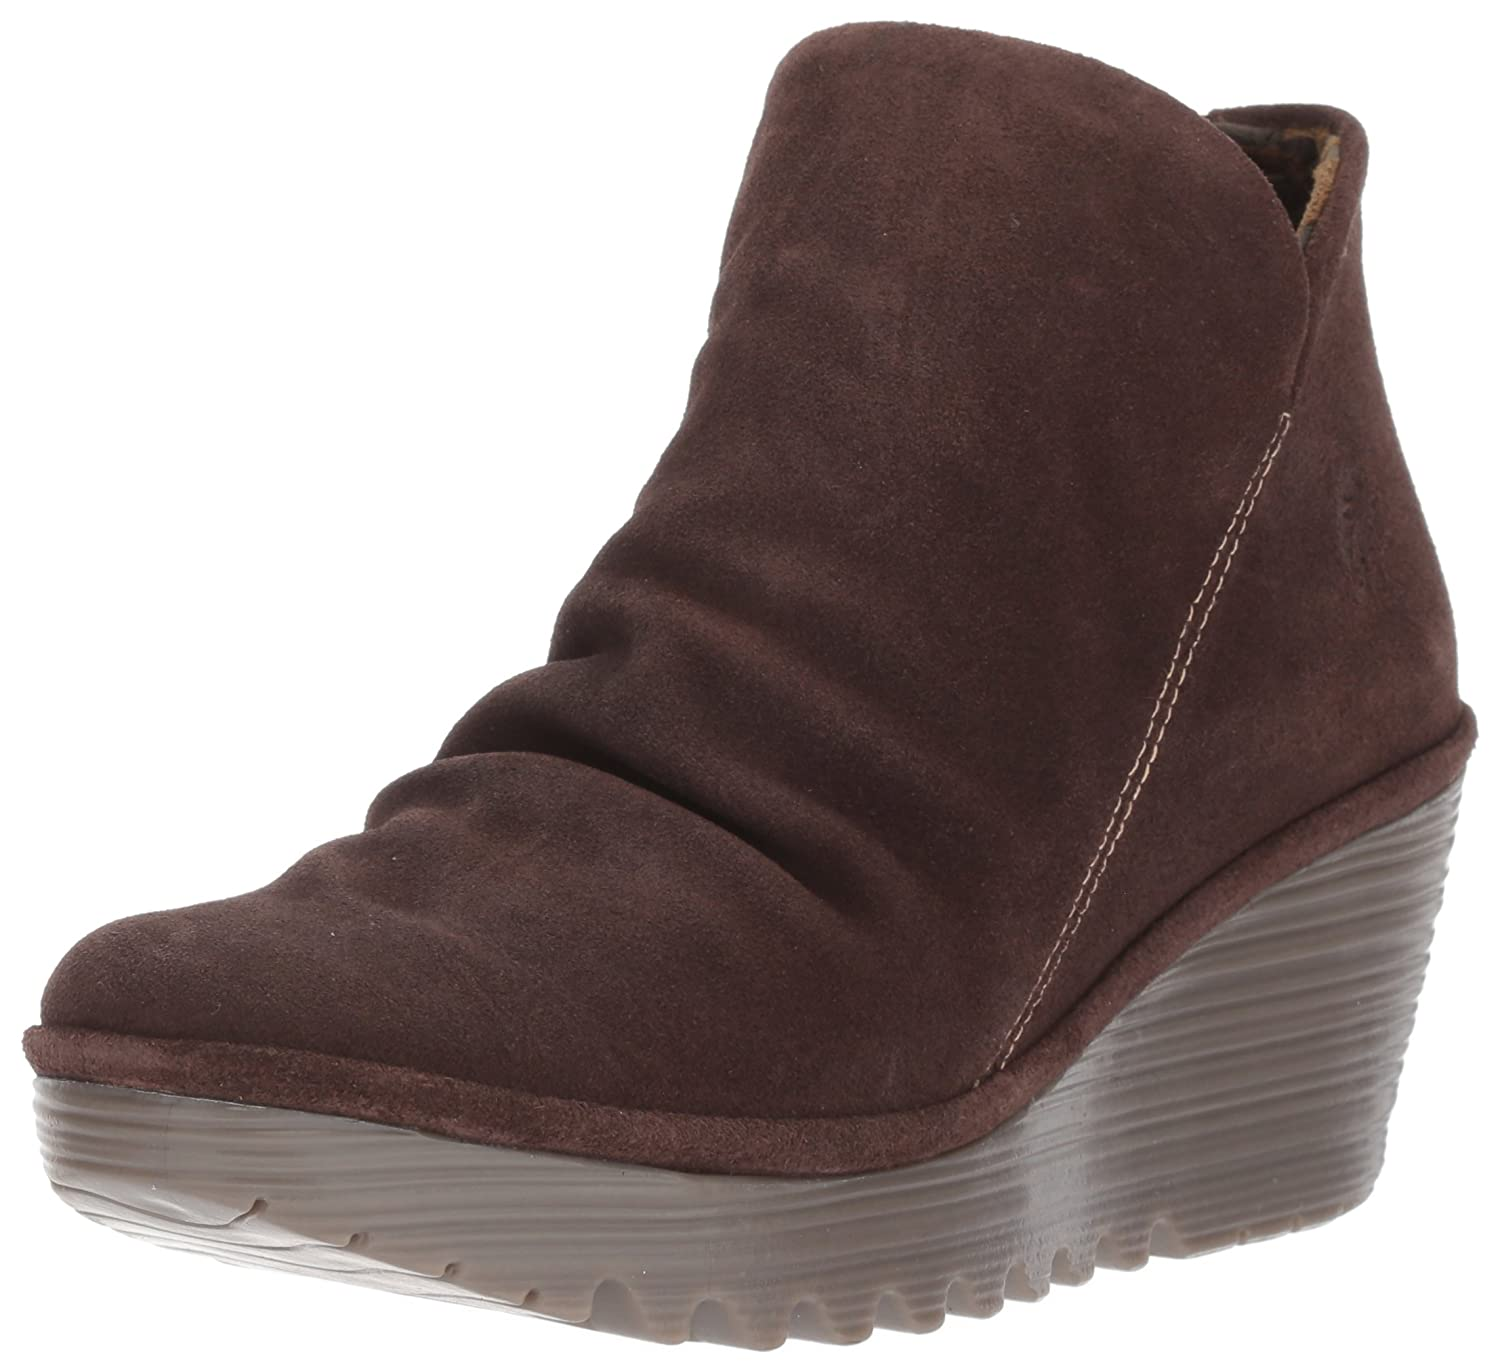 FLY London Women's Yip Boot B00K855UKW 39 M EU (8-8.5 US)|001 Expresso Oil Suede